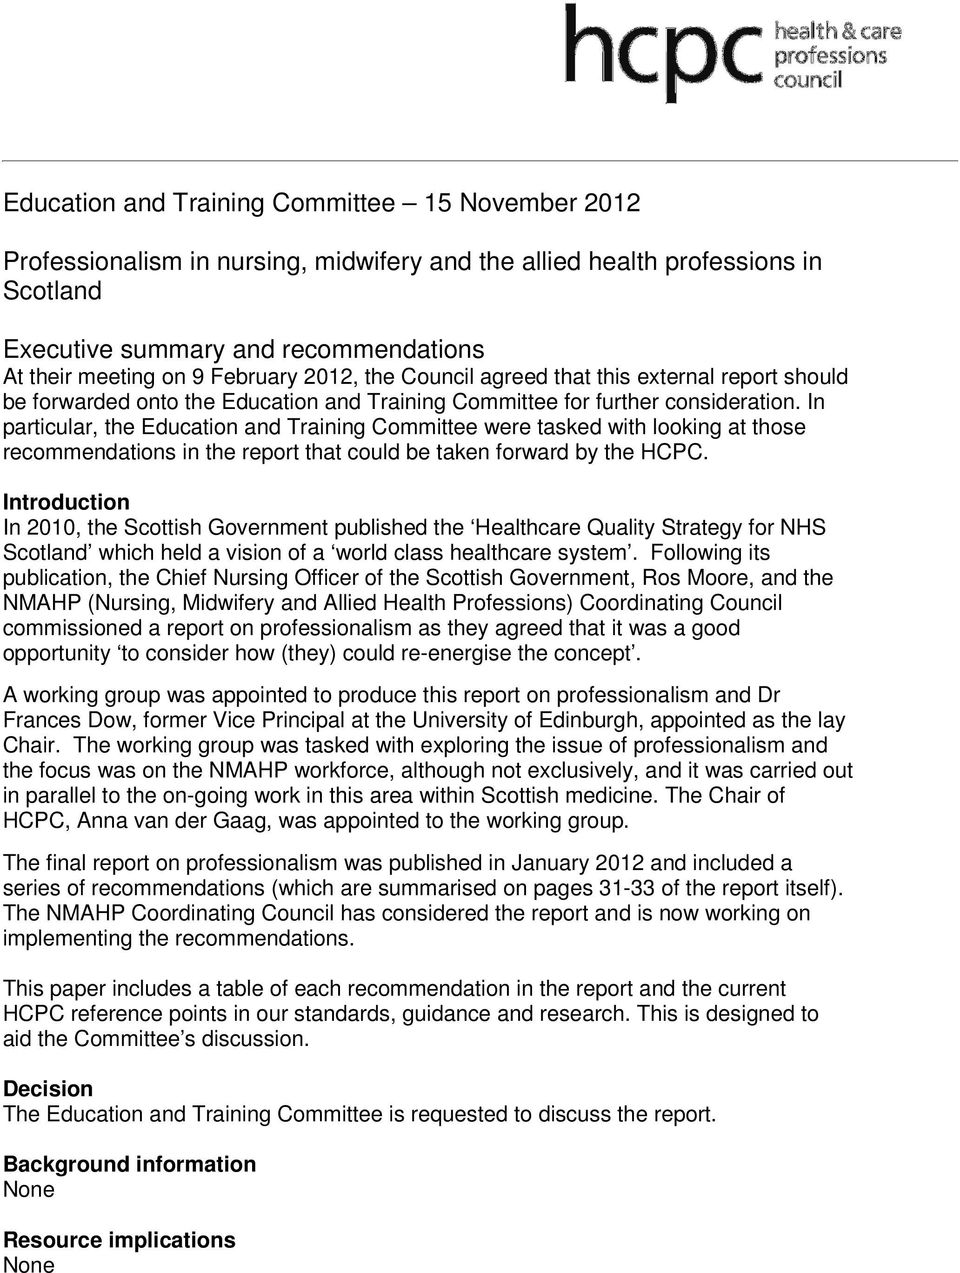 In particular, the Education and Training Committee were tasked with looking at those recommendations in the report that could be taken forward by the HCPC.